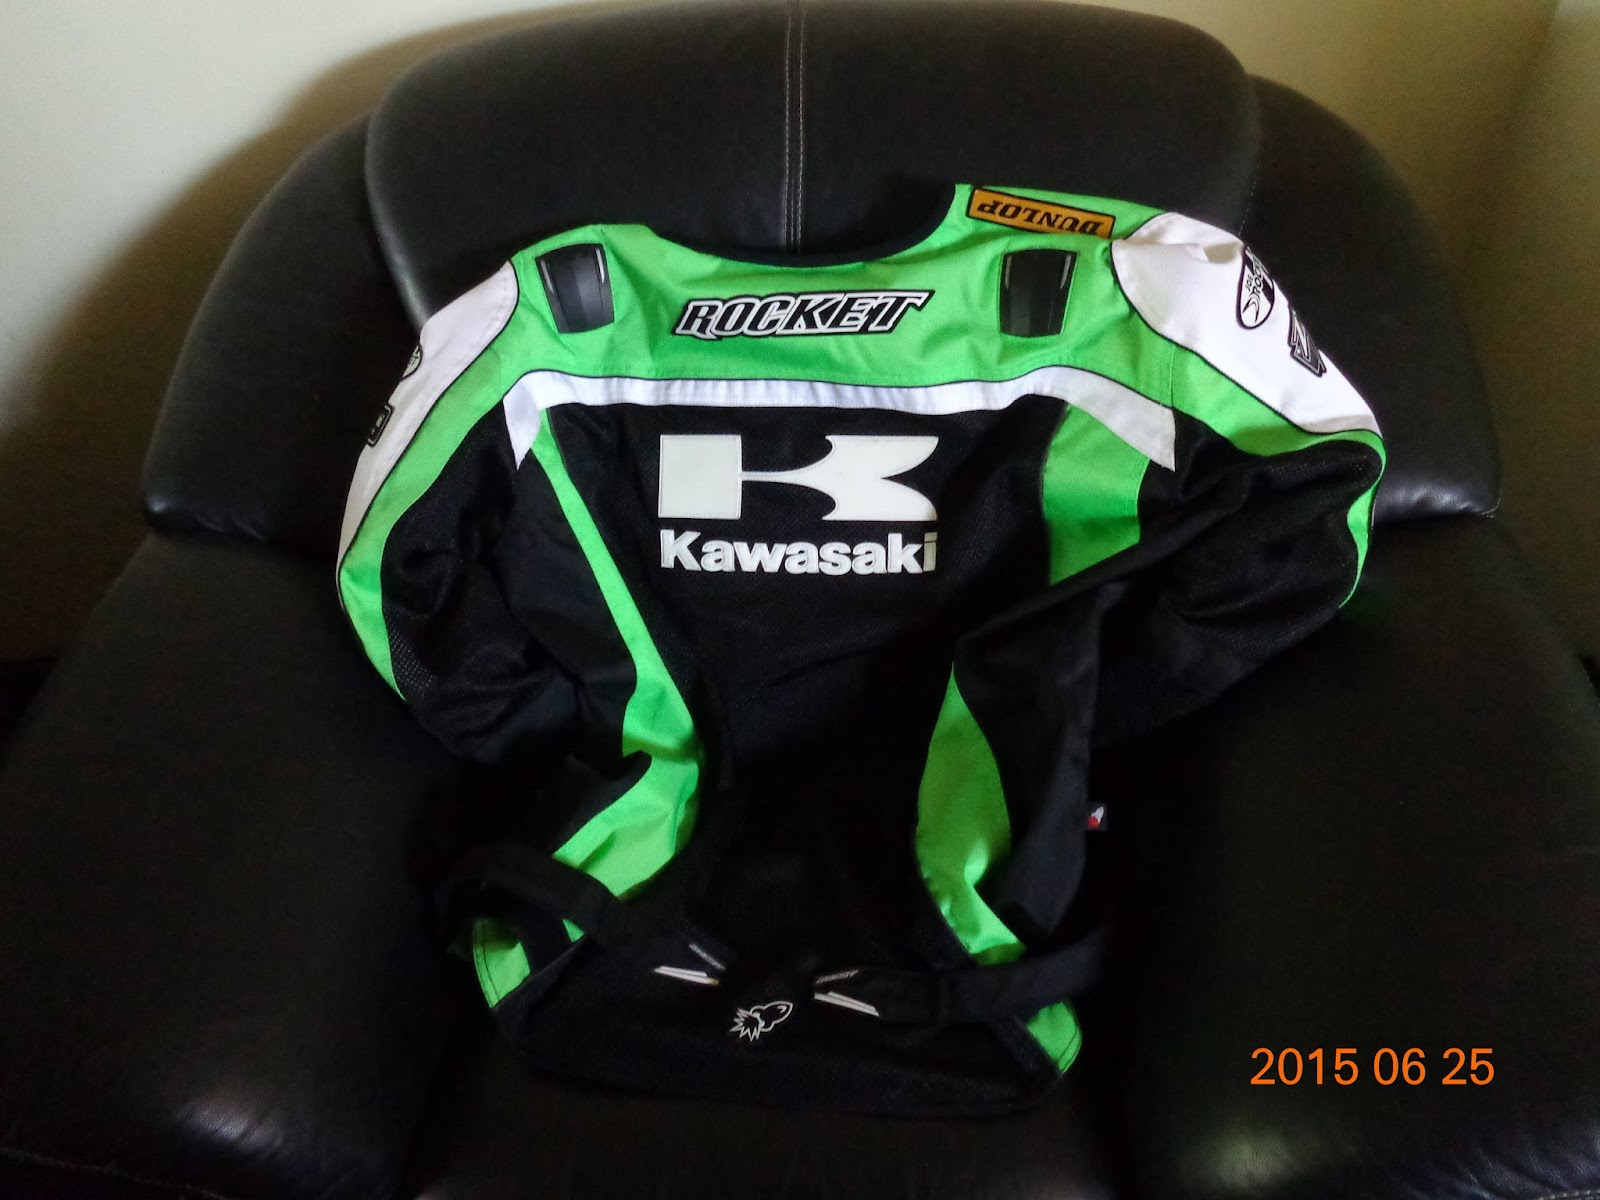 Joe Rocket Kawasaki Mesh Jacket